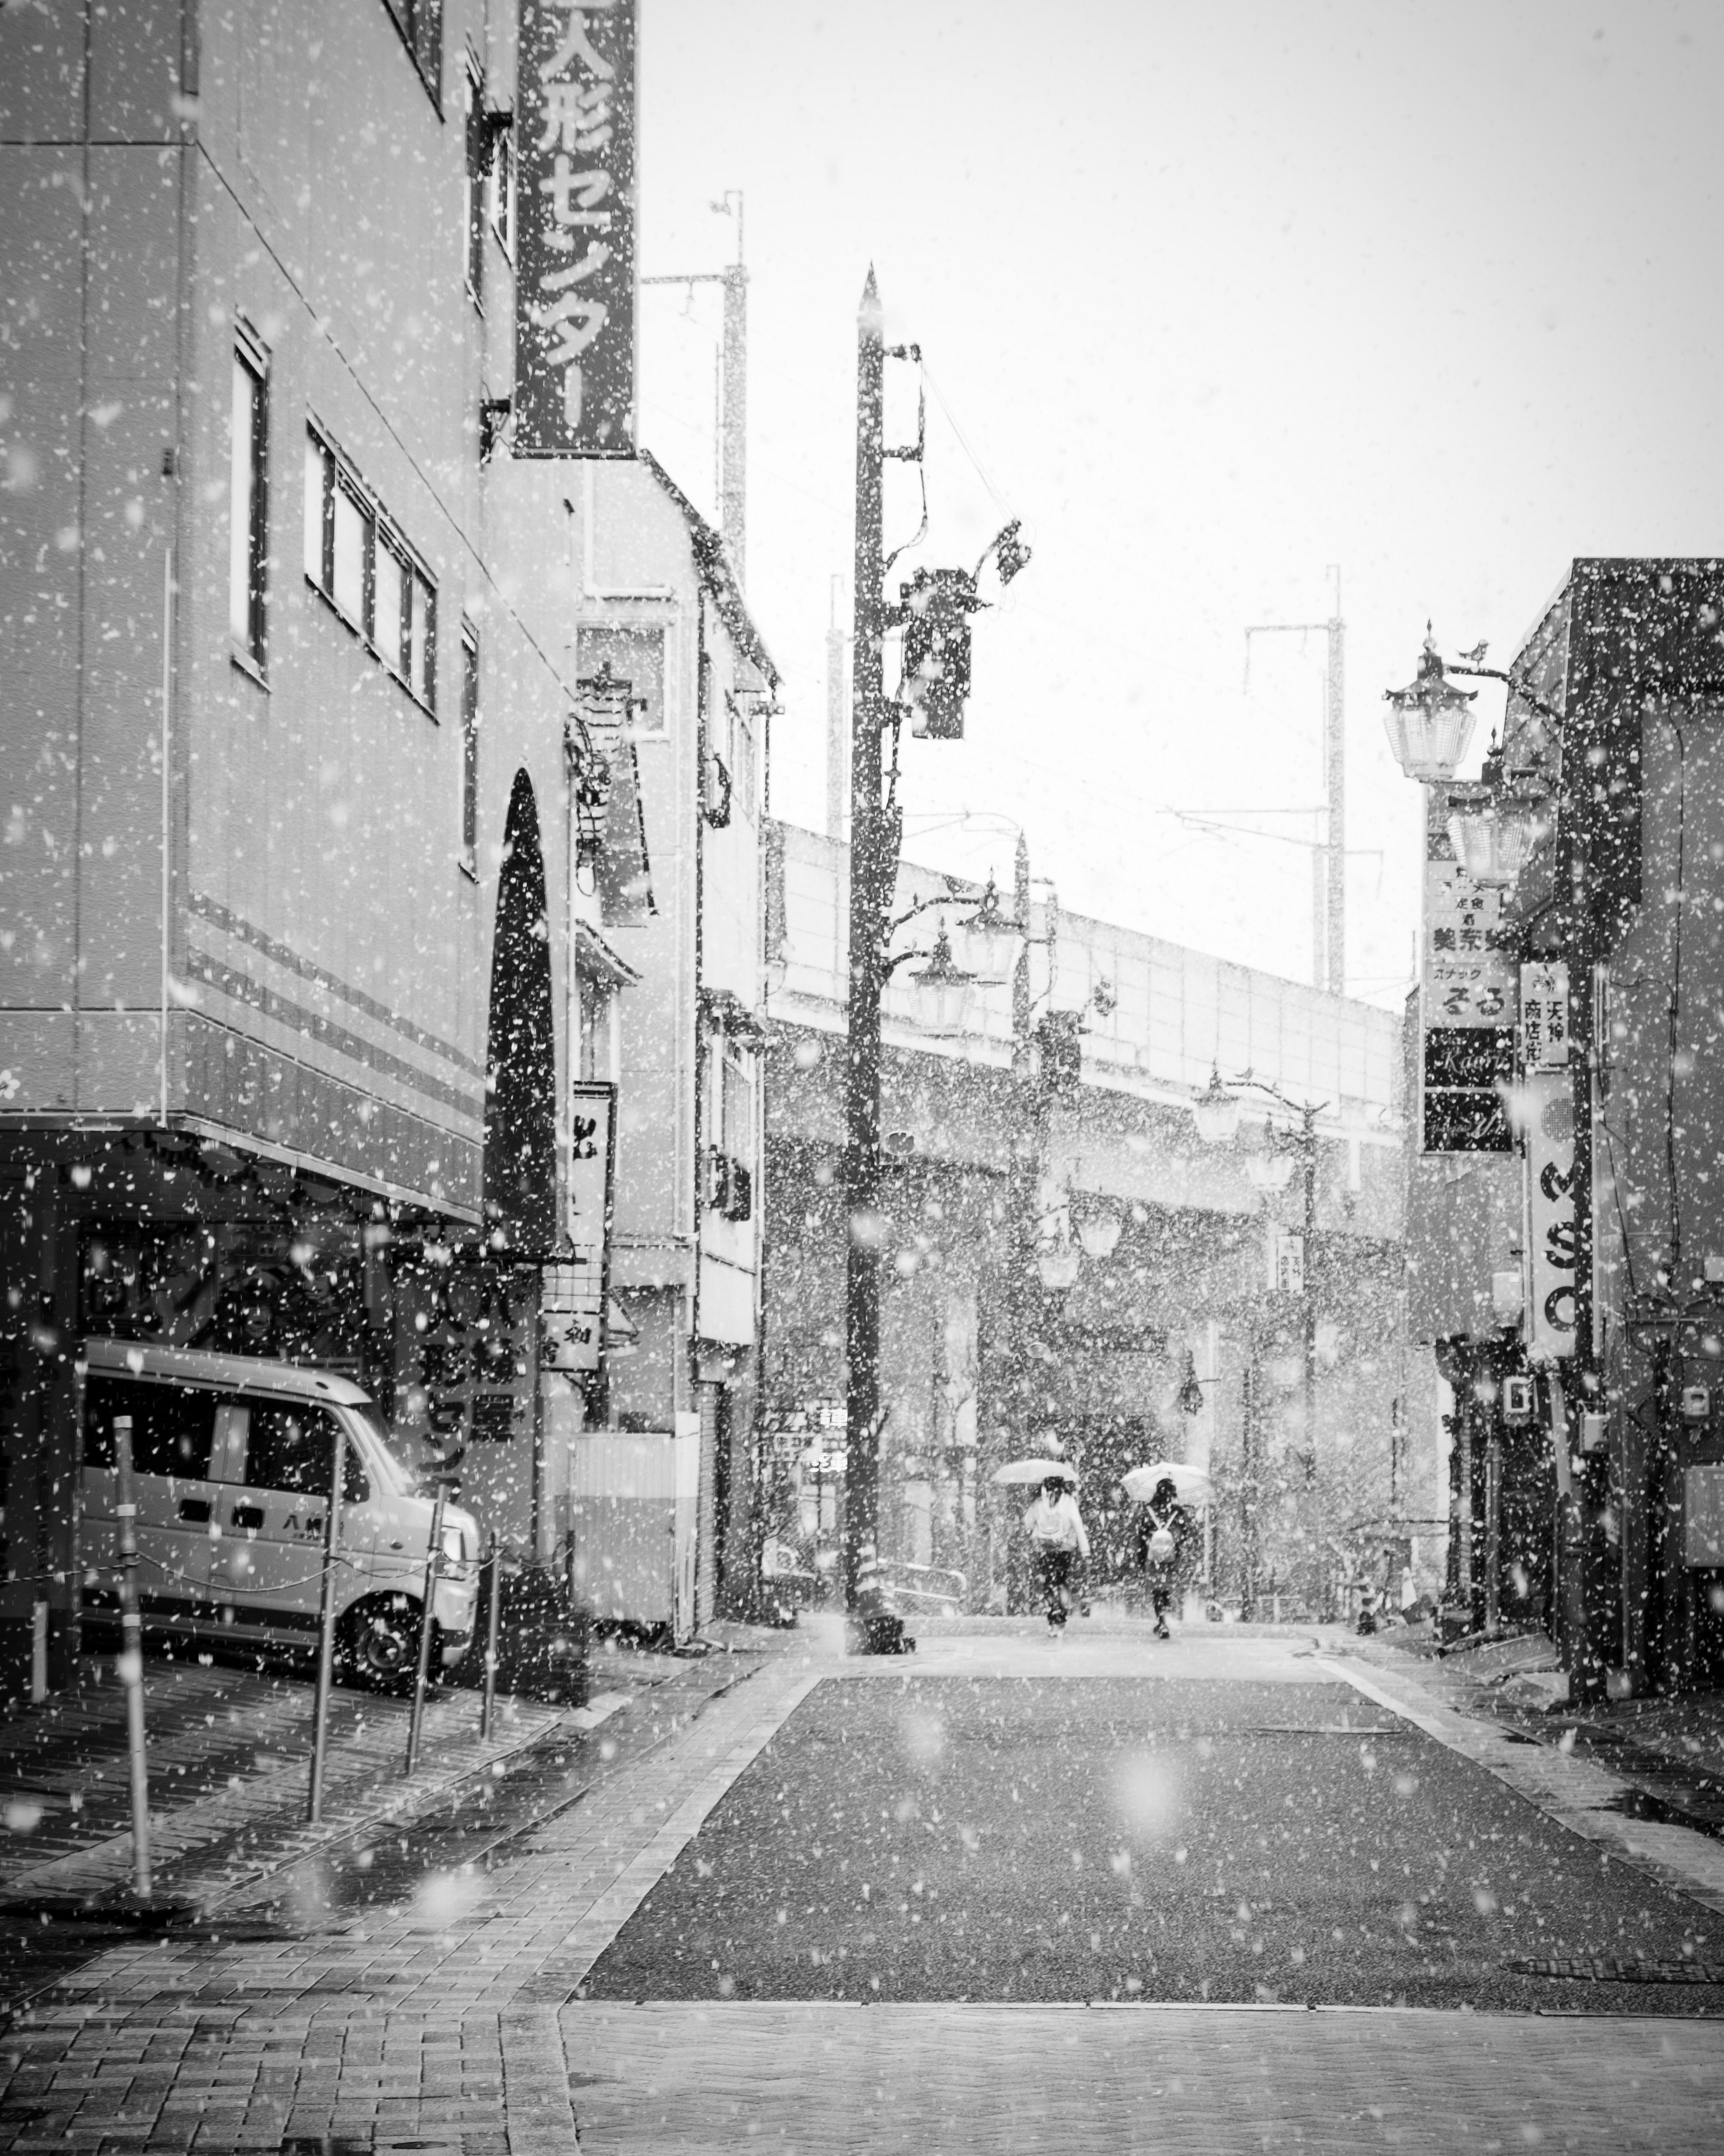 Black and white shot of city street in daytime with snow in Ueda